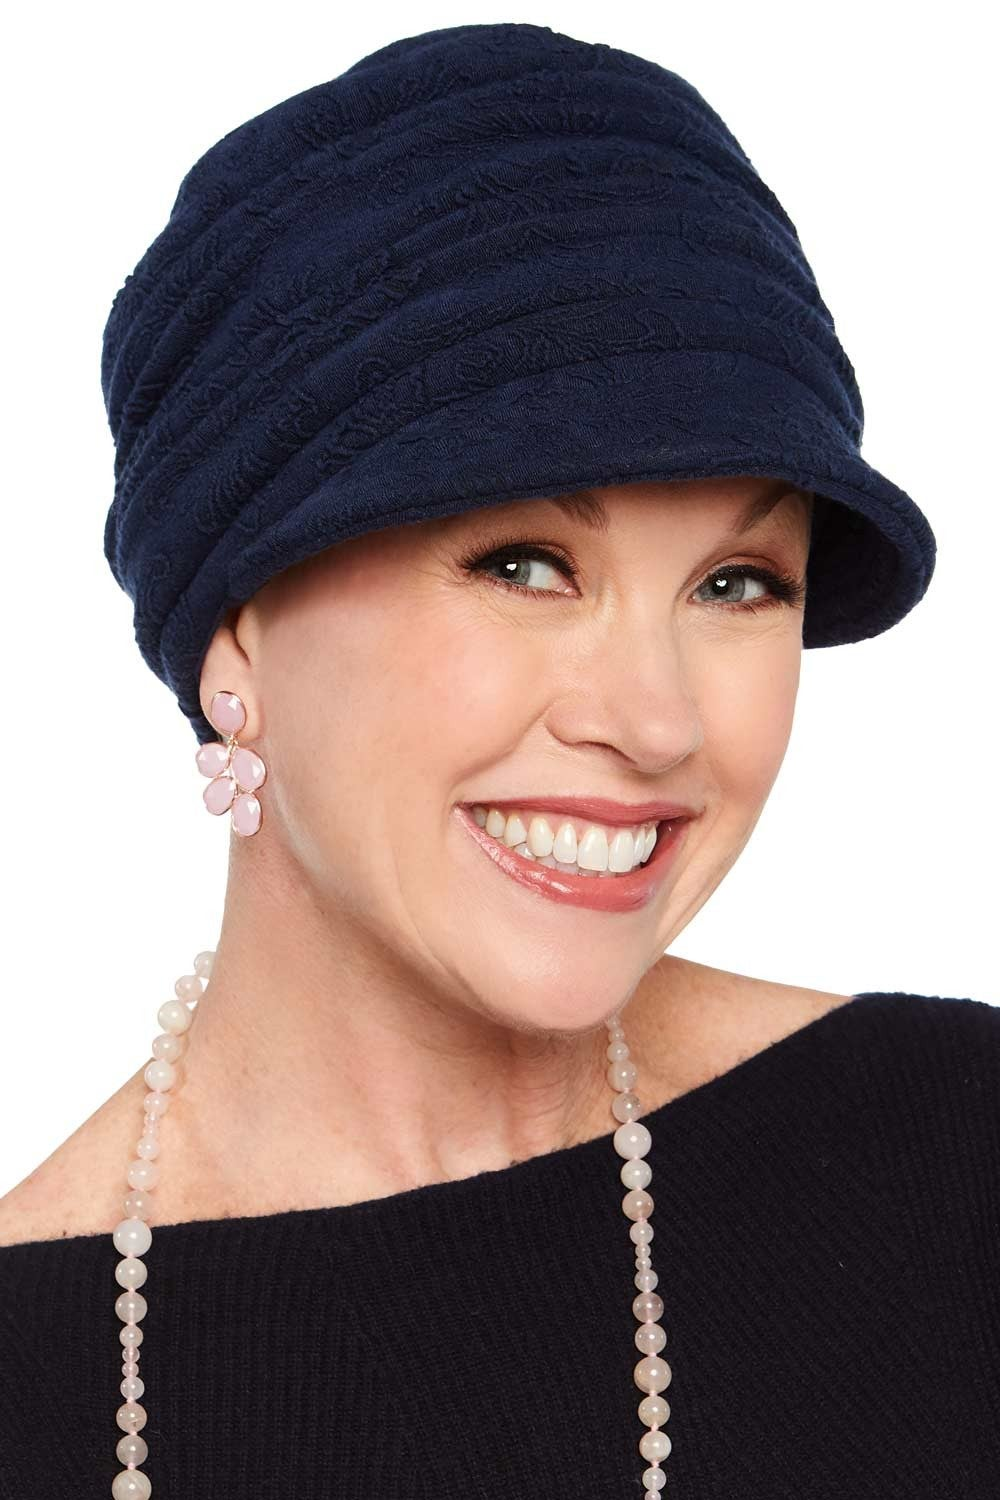 textured-hannah-hat-chemo-hats-cancer-patients_1